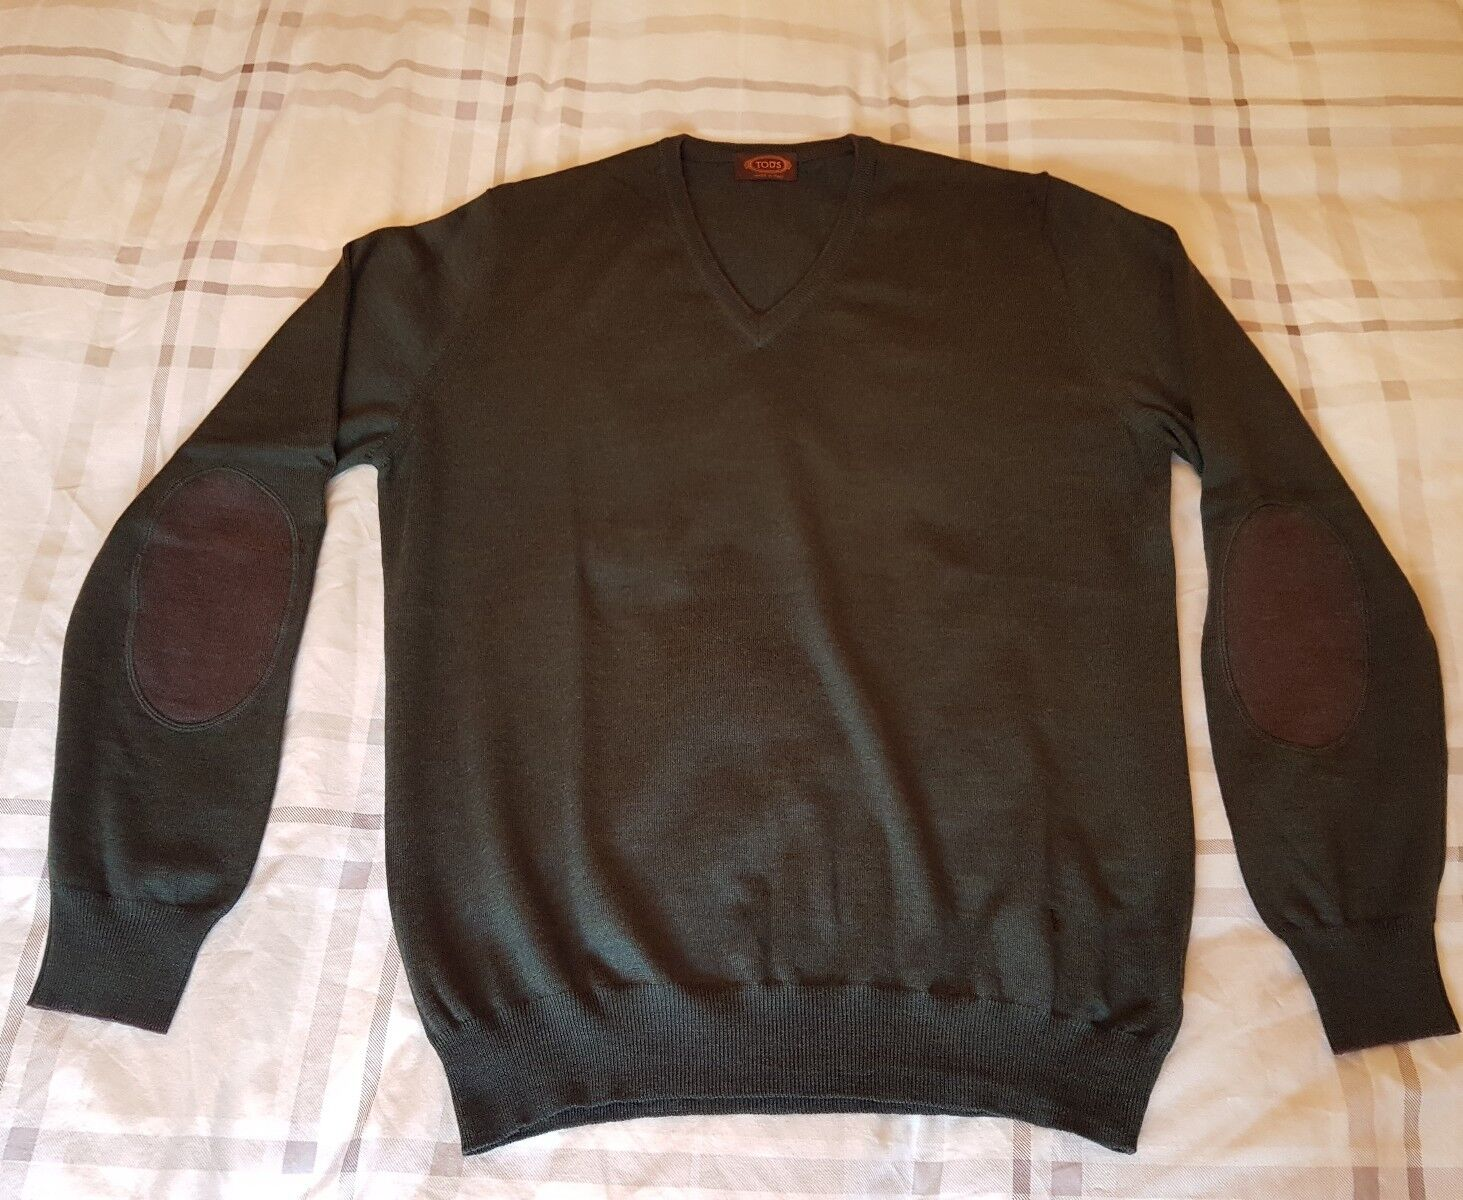 TODS  Herren LUXURY JUMPER / SWEATER - Grün + ELBOW PATCHES - 44